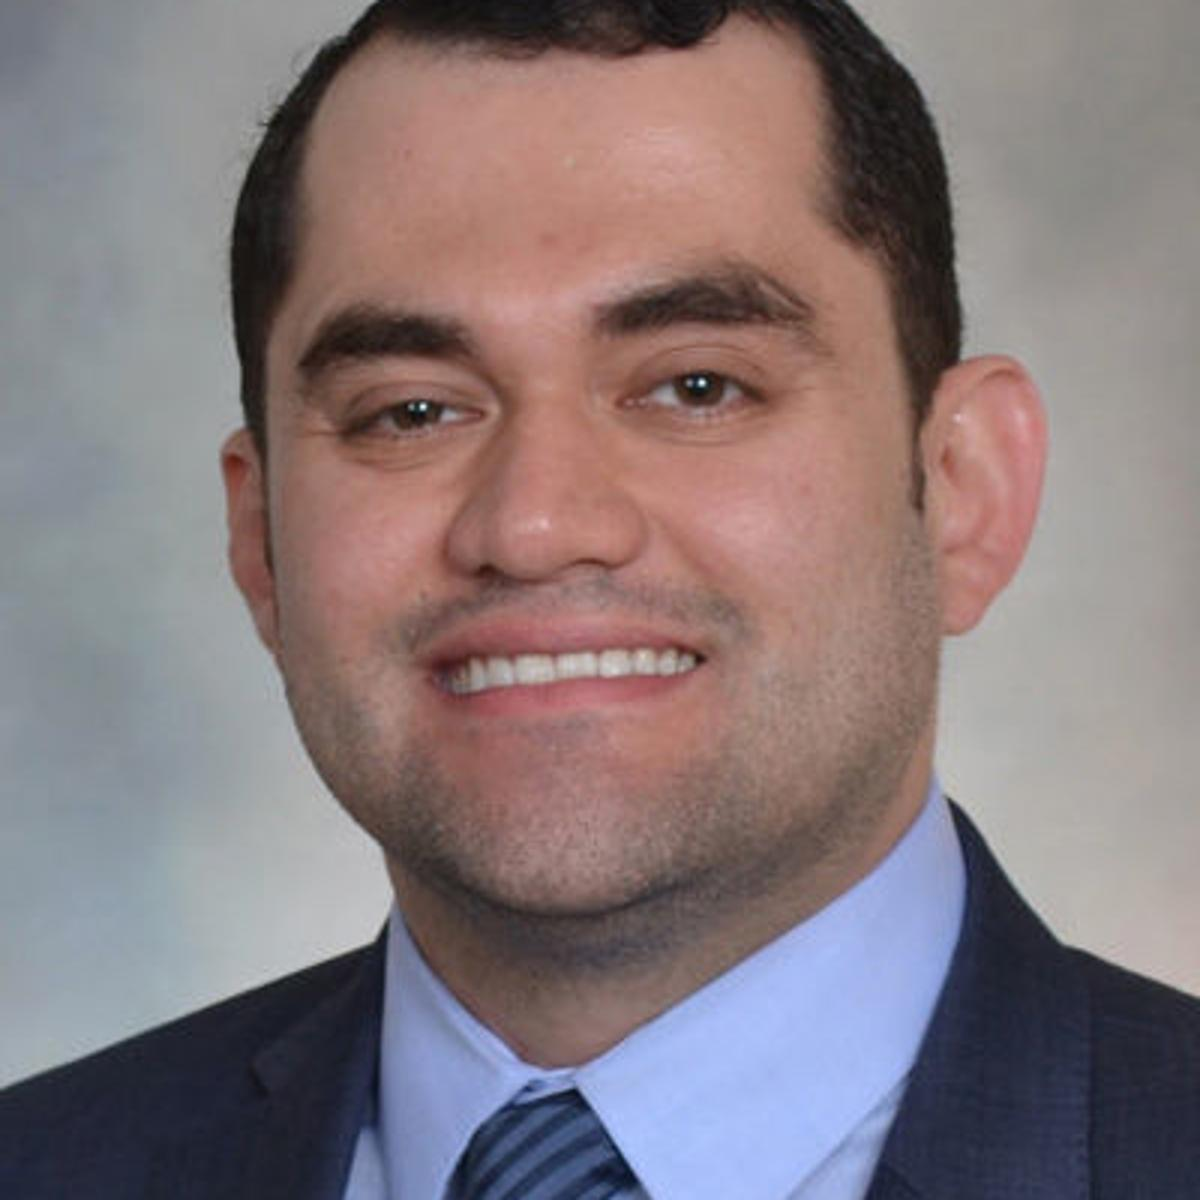 Hospitalist joins MCHS in Eau Claire | Local | chippewa com